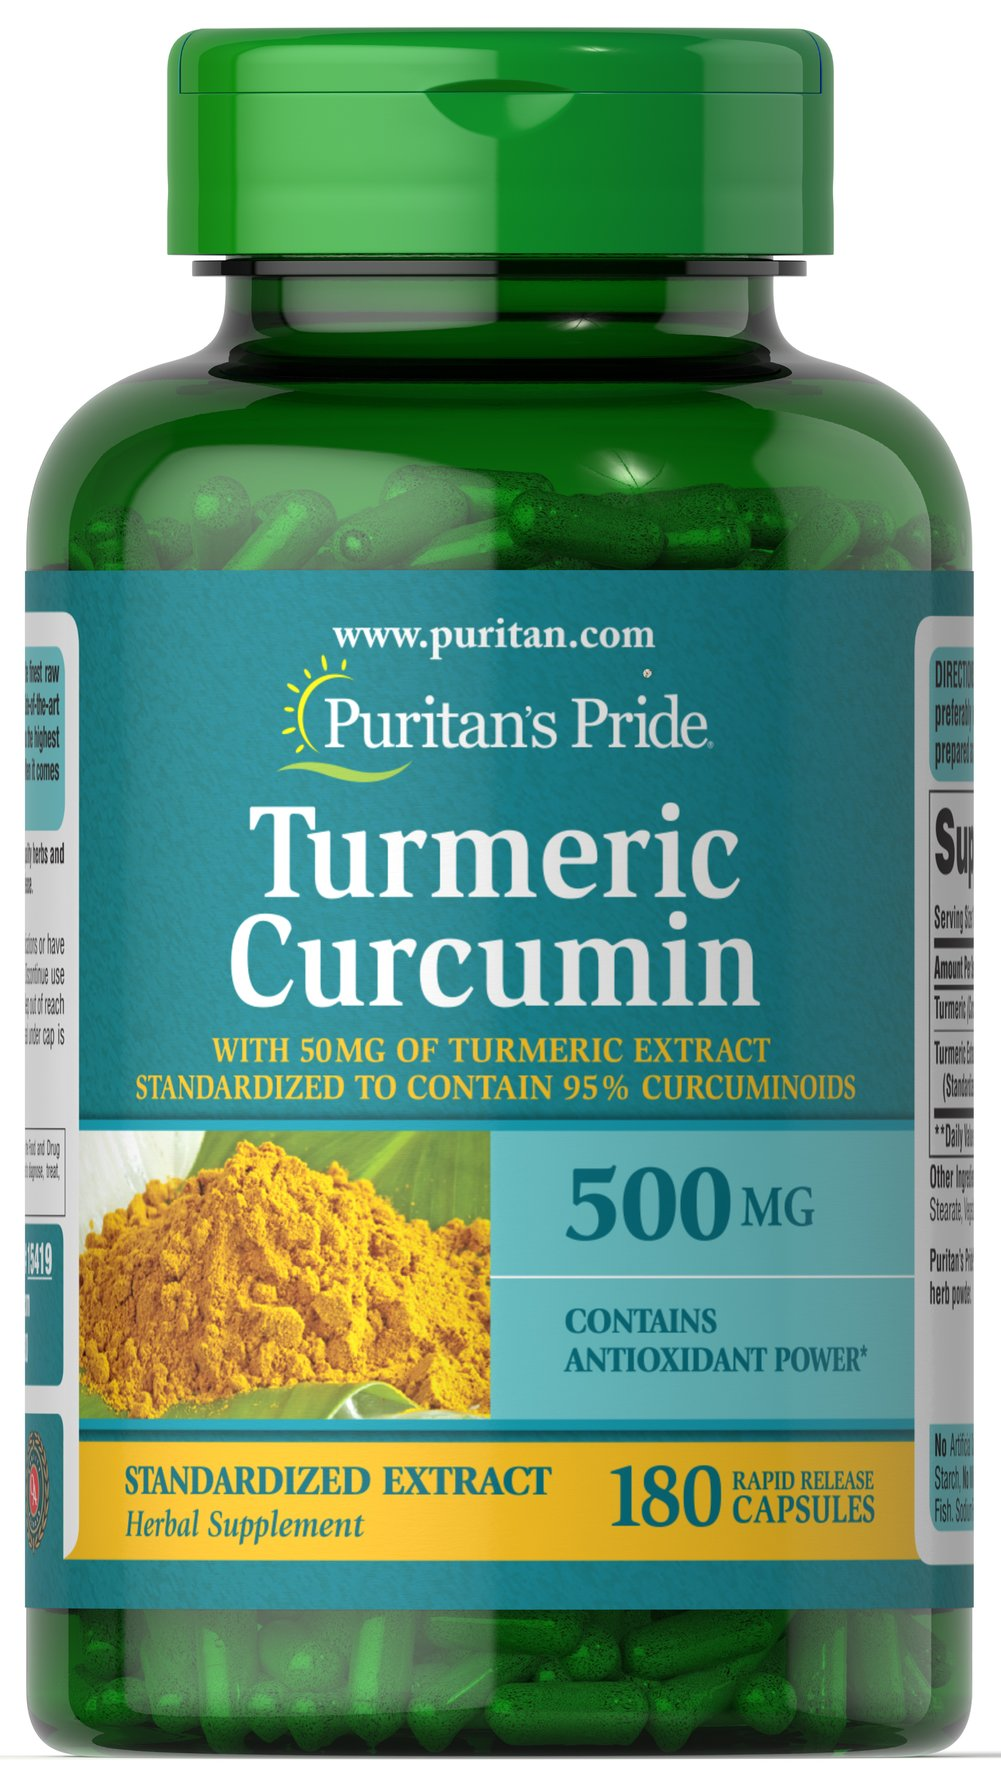 Turmeric Curcumin 450 mg <p>The active ingredients in Turmeric include beneficial flavonoids called Curcuminoids, which are plant-based antioxidants. **</p><p>Contains antioxidants</p> 180 Capsules 450 mg $39.99